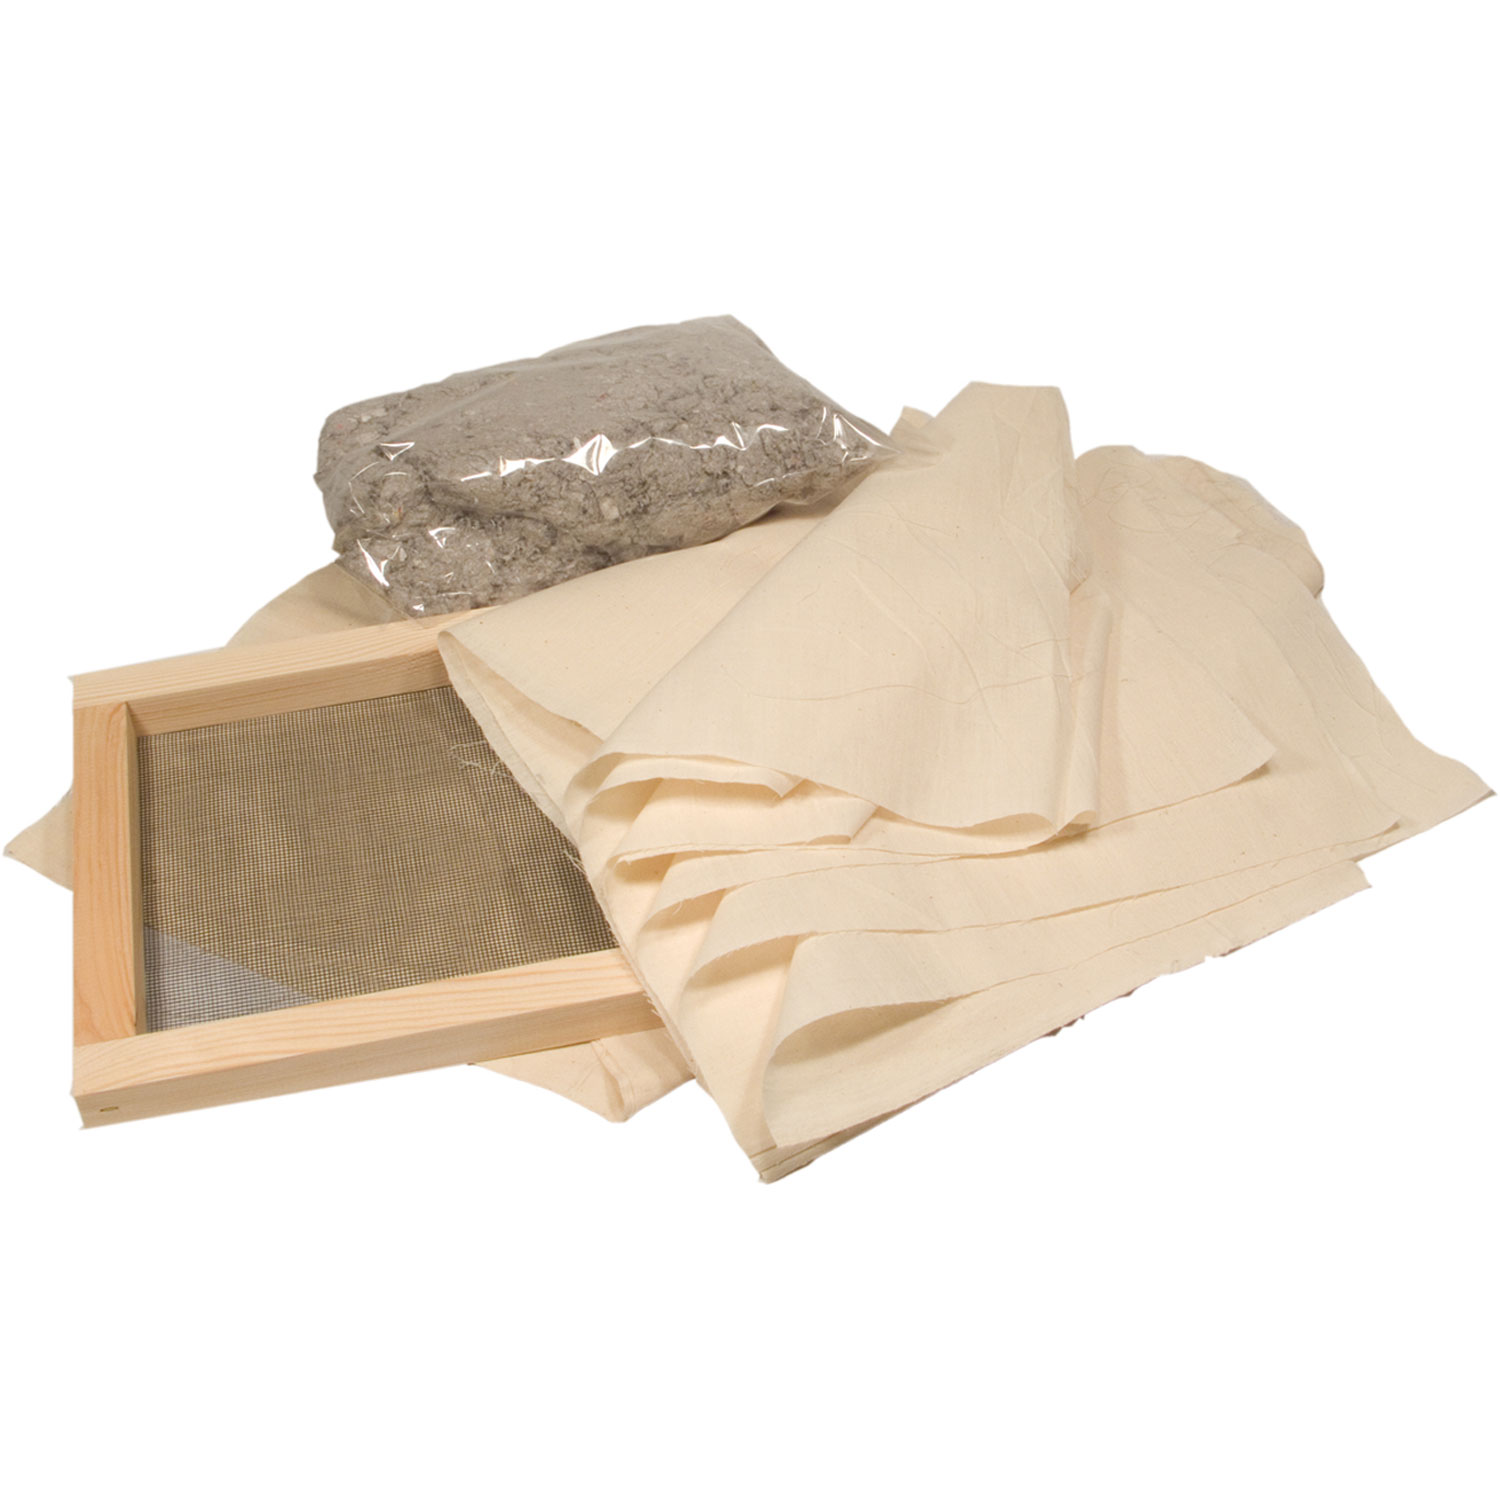 Kit for making your own Paper